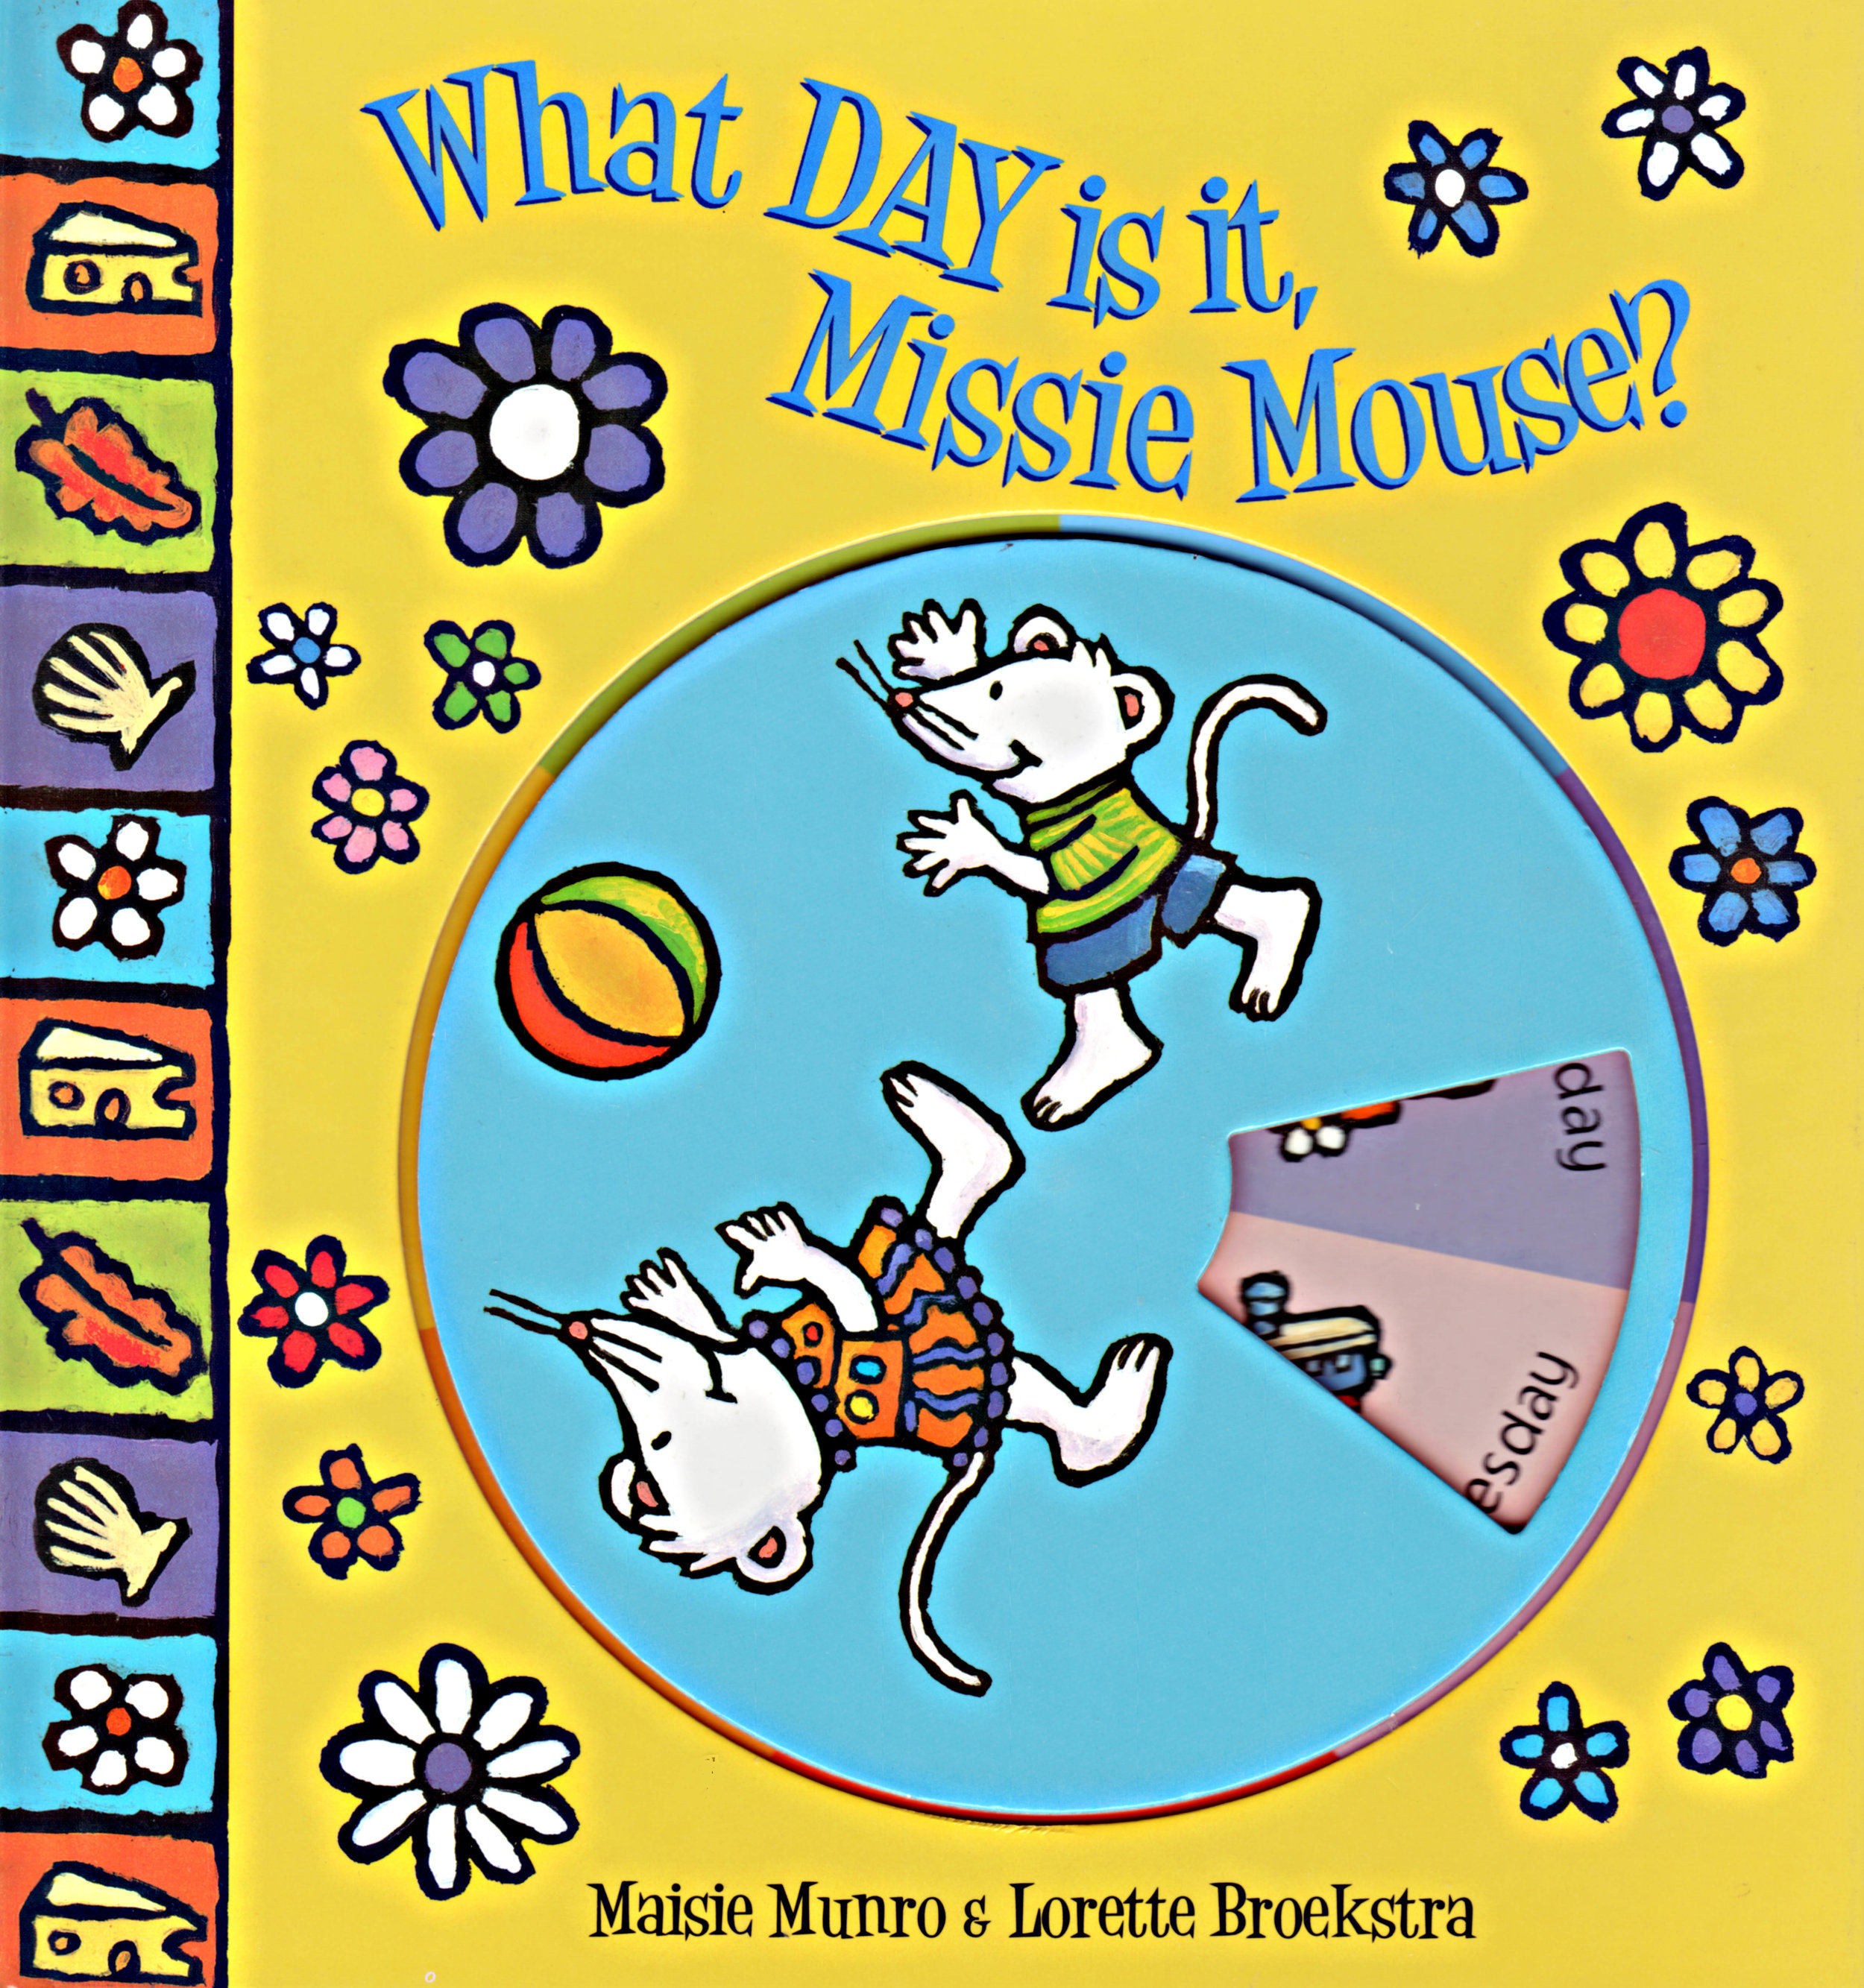 What Day is it Missie Mouse?